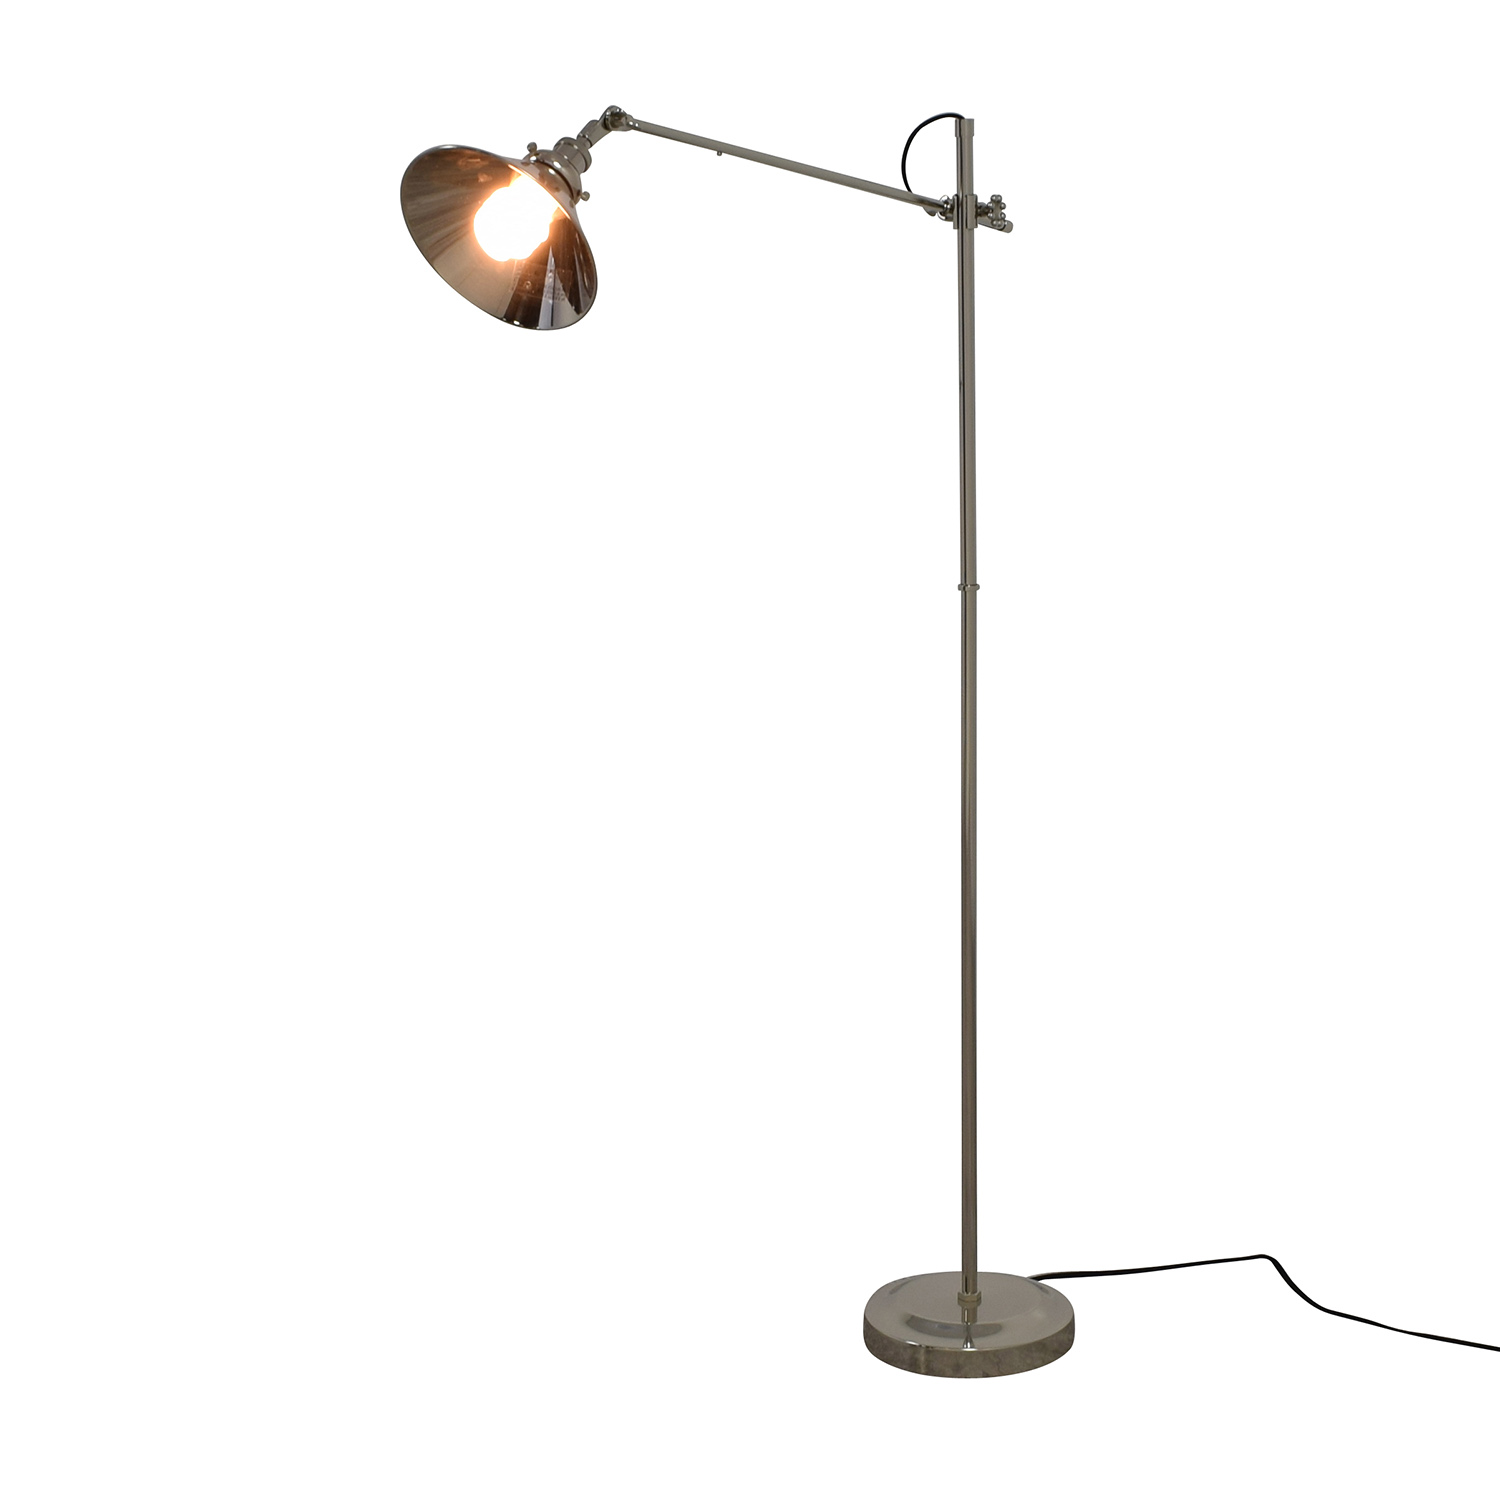 Cb Twine Floor Lamp Coupon Code - Restoration hardware floor lamps